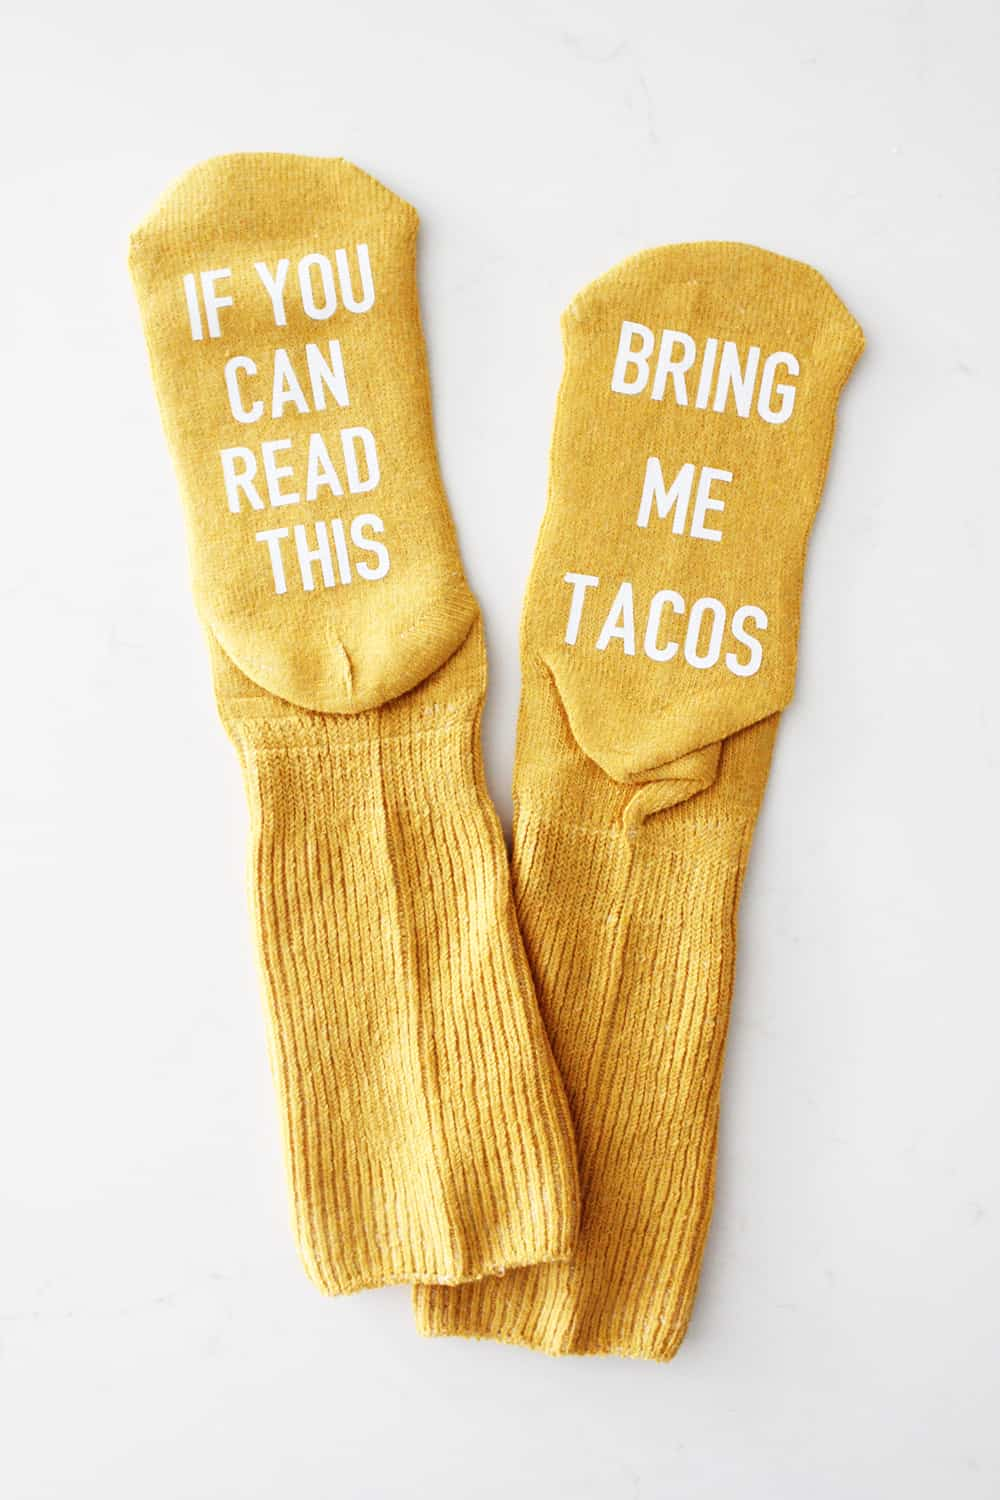 """If you can read this, bring me tacos"" funny socks"